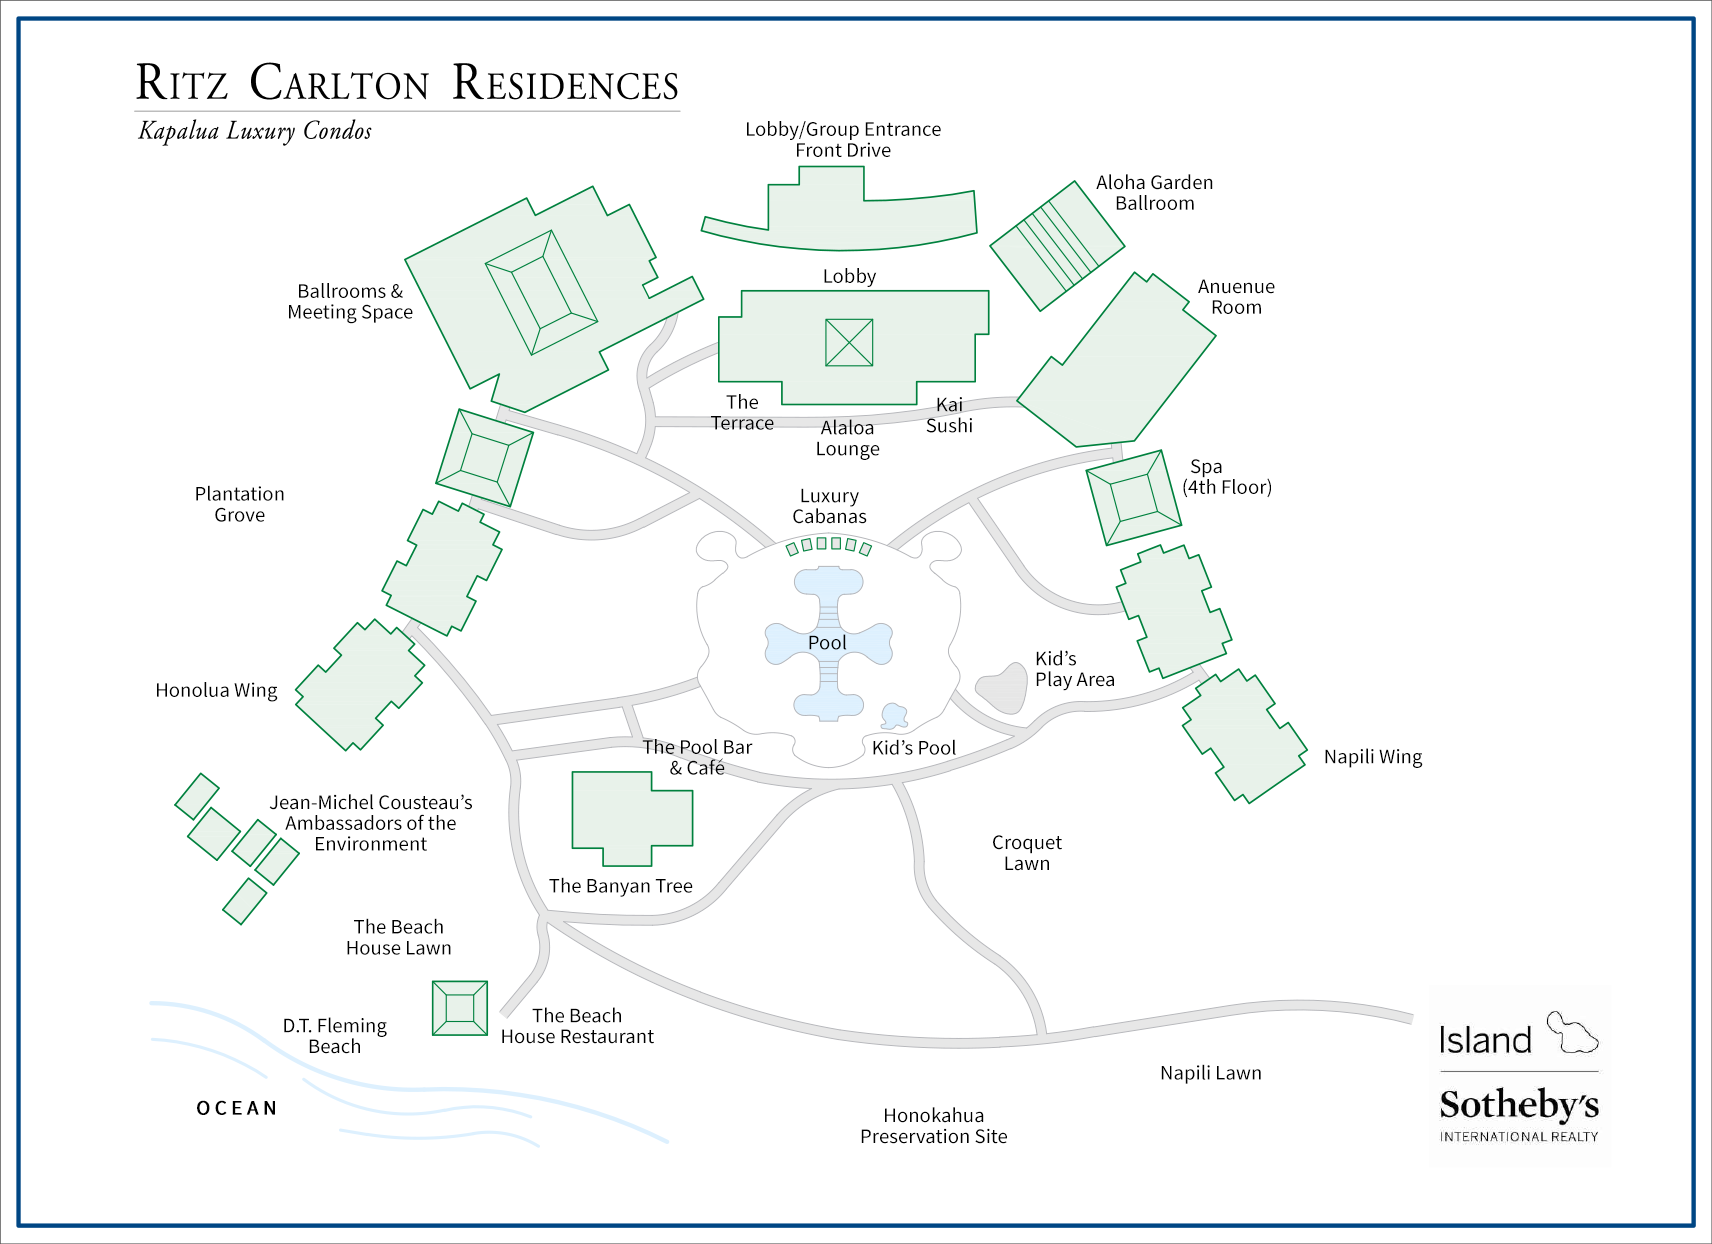 The ritz residences kapalua condos for sale map floor plan pooptronica Image collections